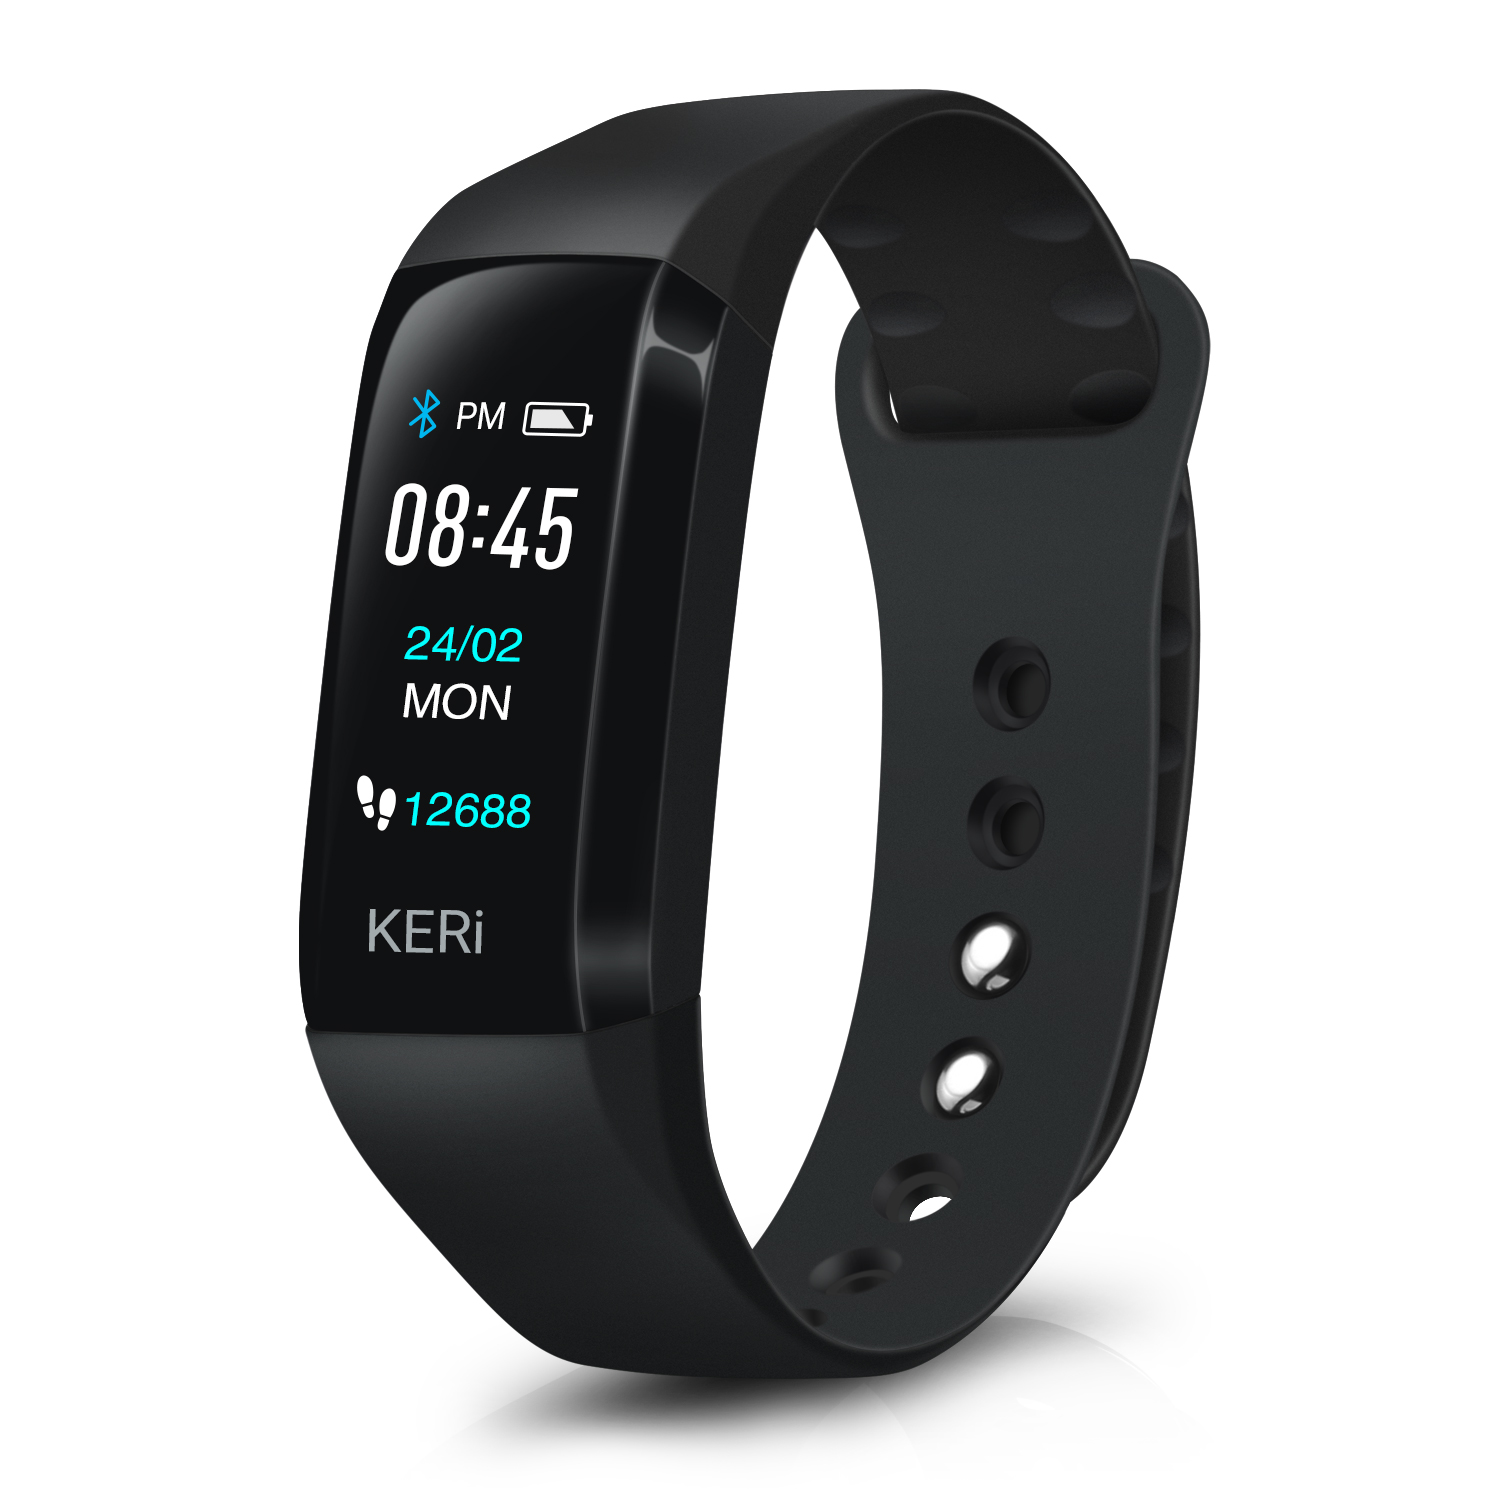 August Activity Tracker - KERi - Smart Health Wristband